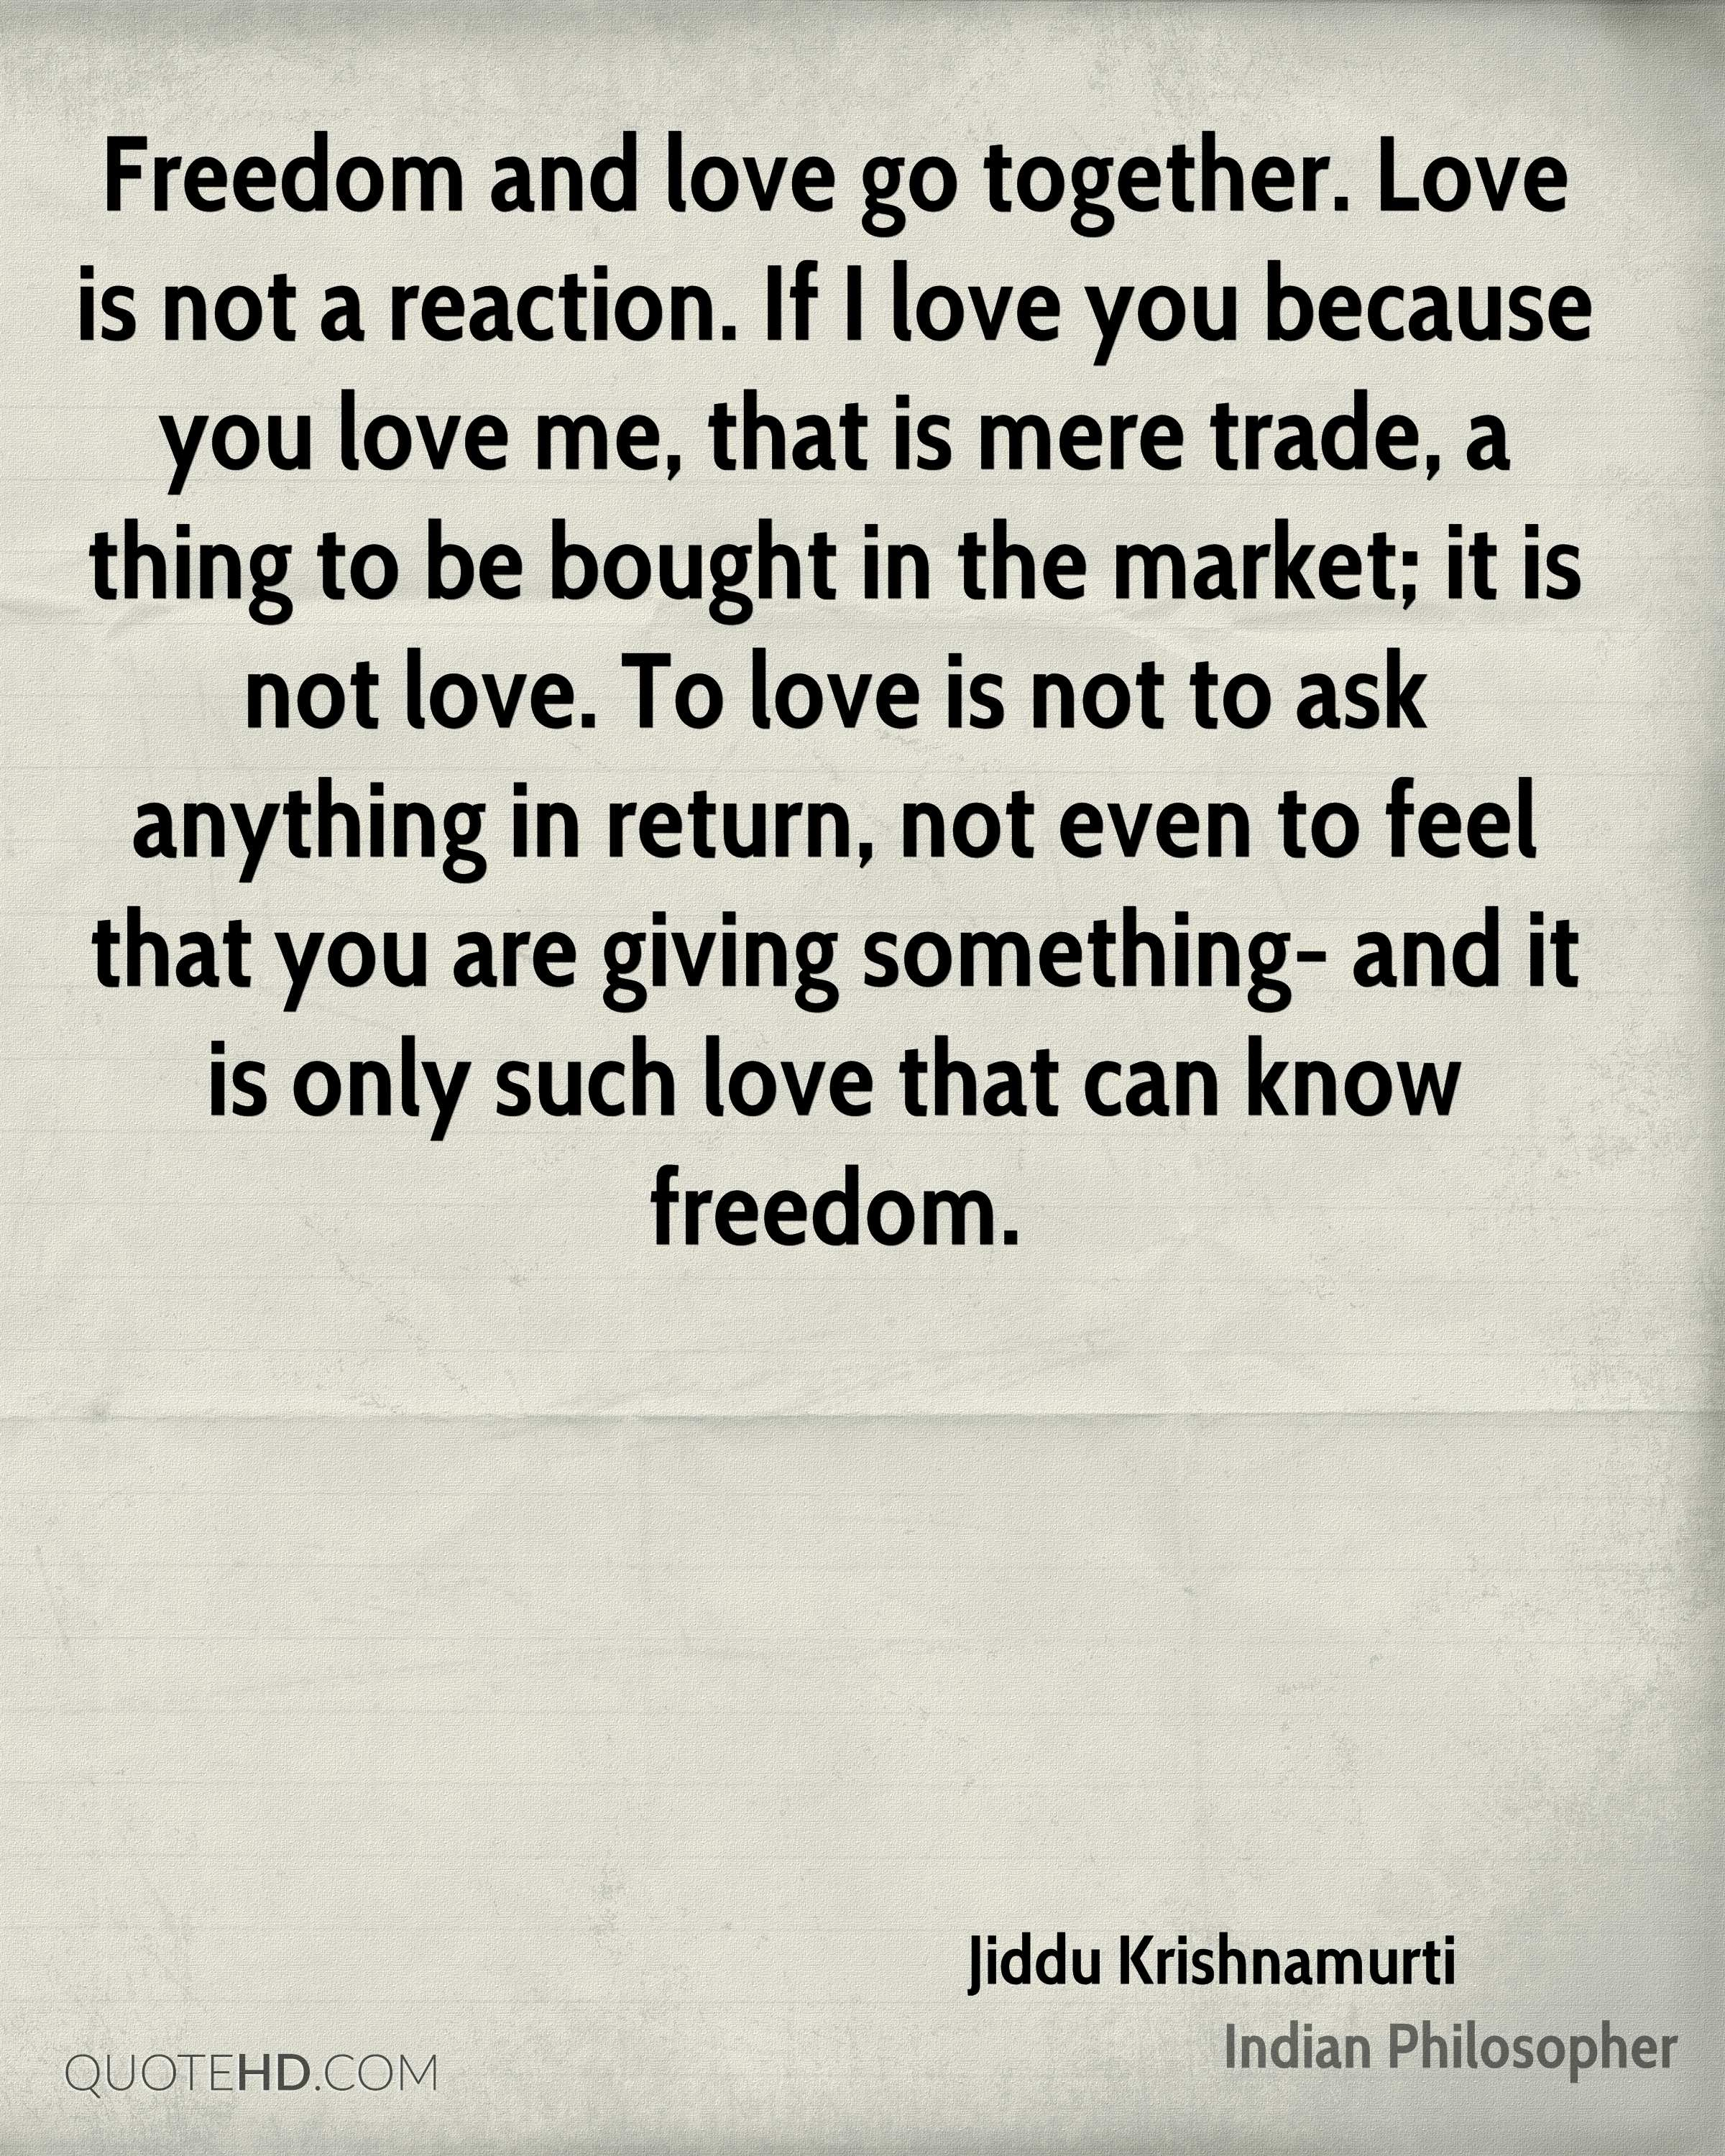 Freedom and love go together. Love is not a reaction. If I love you because you love me, that is mere trade, a thing to be bought in the market; it is not love. To love is not to ask anything in return, not even to feel that you are giving something- and it is only such love that can know freedom.